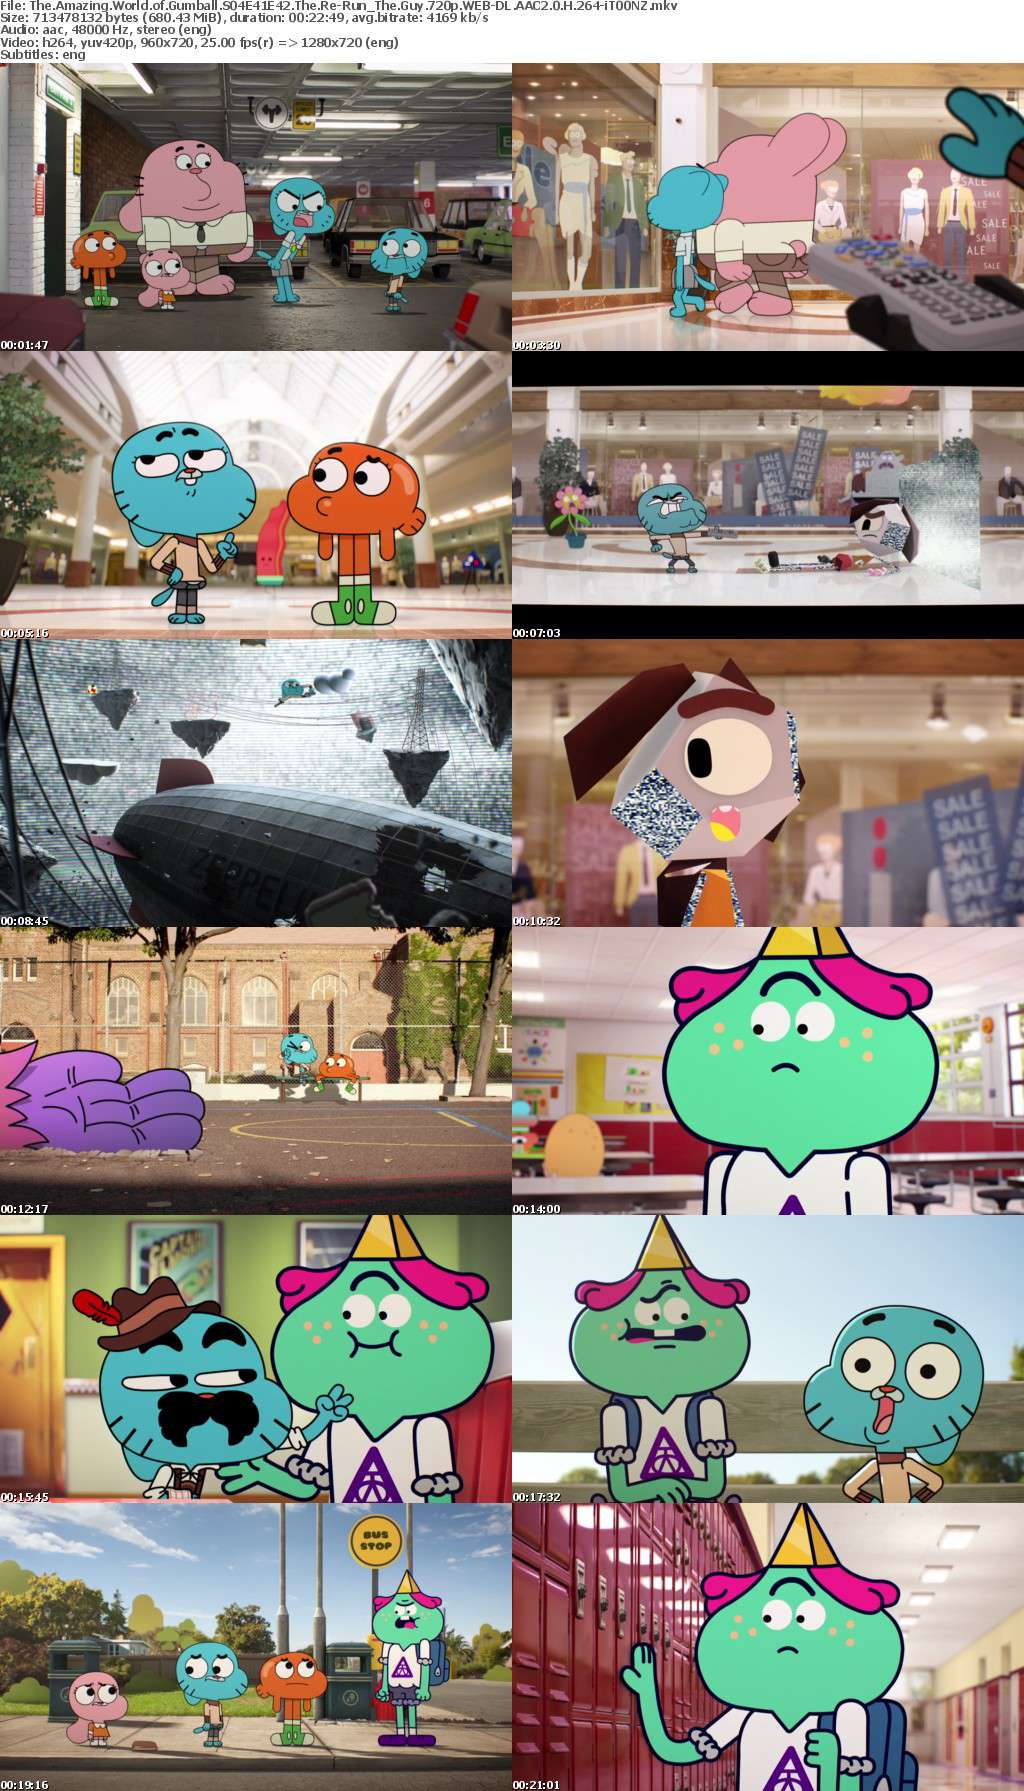 The Amazing World of Gumball S04E41E42 The Re-Run The Guy 720p WEB-DL AAC2 0 H 264-iT00NZ